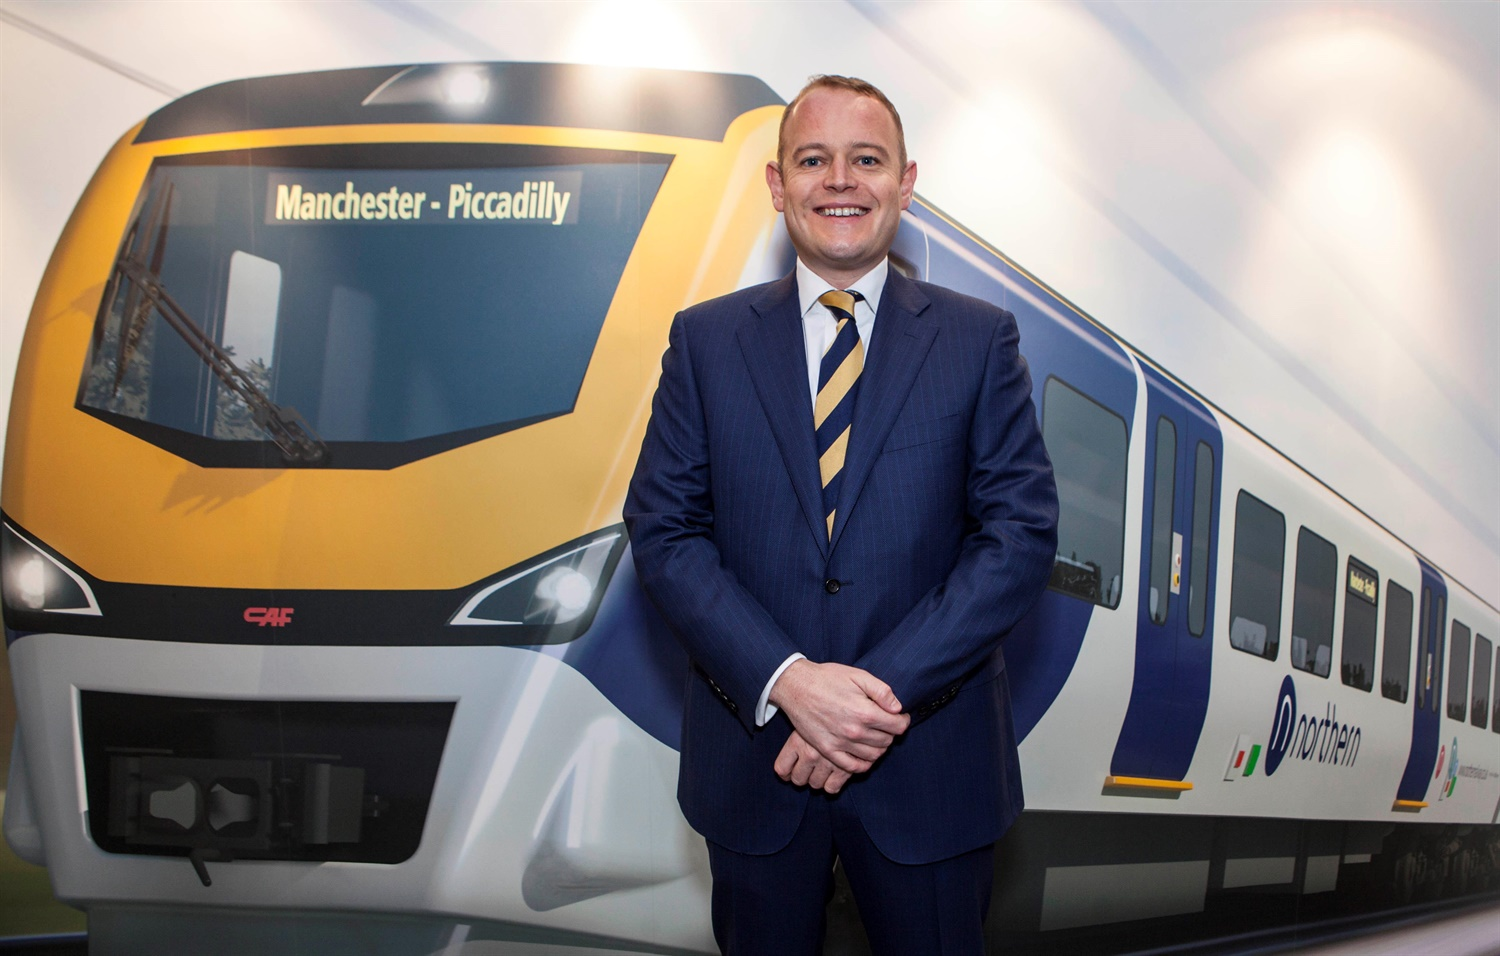 Creation of devolved Northern Route 'critical', says TOC boss